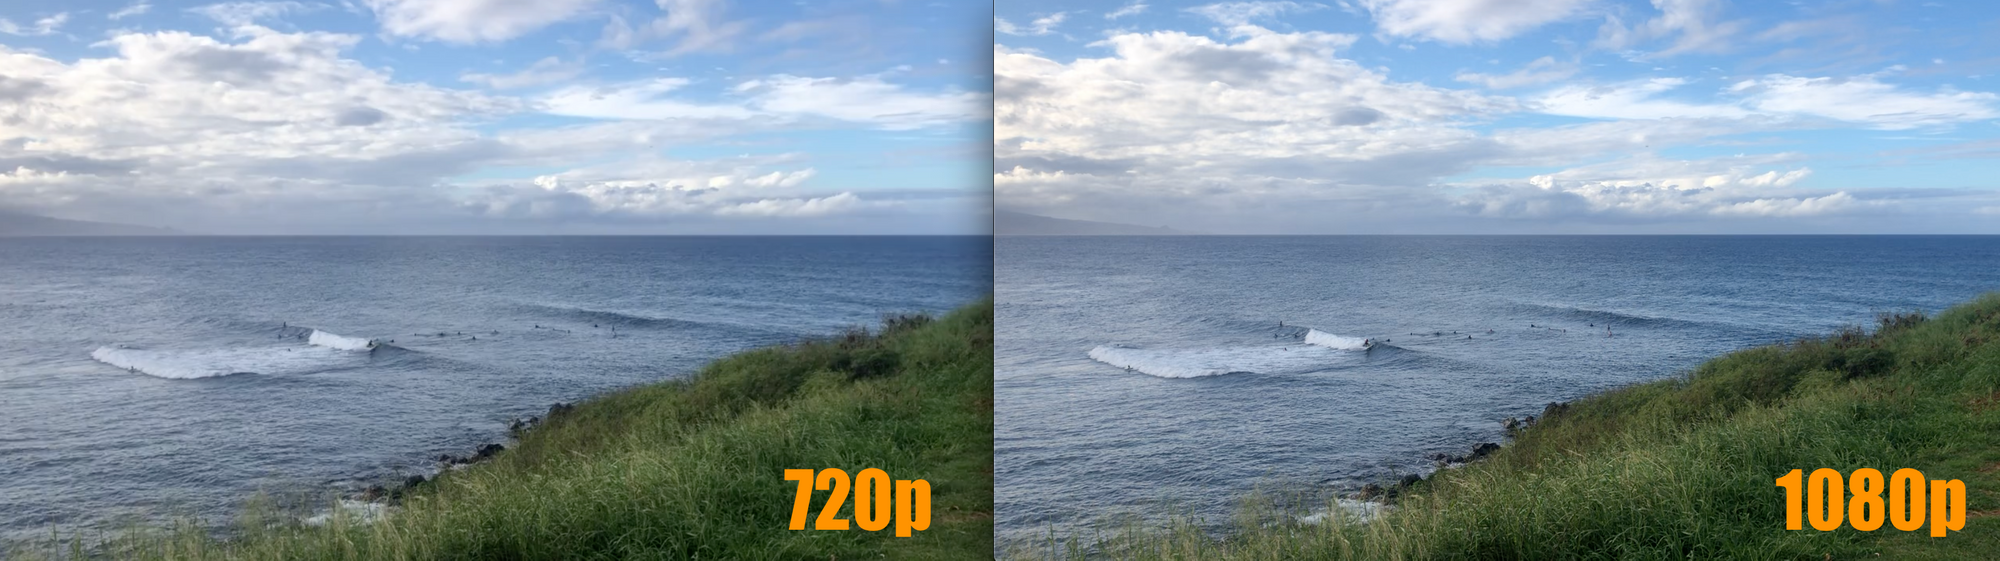 Two screenshots, side by side, showing a comparison of what 720p resolution looks like on the left and 1080p resolution looks like on the right. The images are mostly the same with some greater color vibrancy and crisp detailing on the right image.